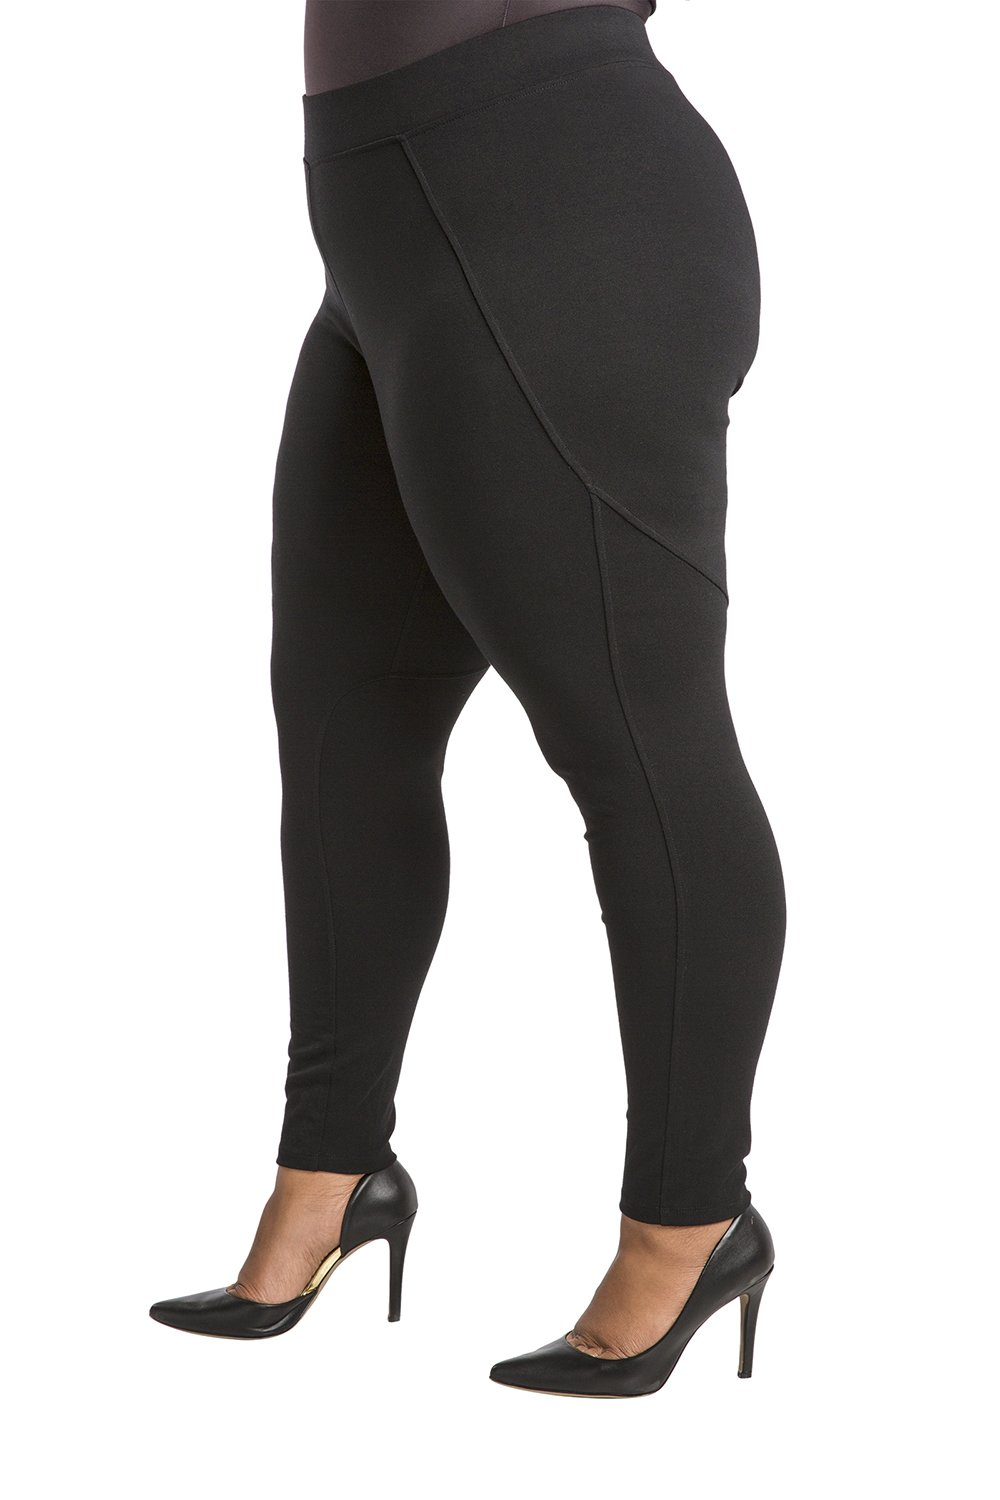 Poetic Justice Plus Size Women's Curvy Fit Black Stretch Ponte Pull On Moto Legging Size 2X by Poetic Justice (Image #2)